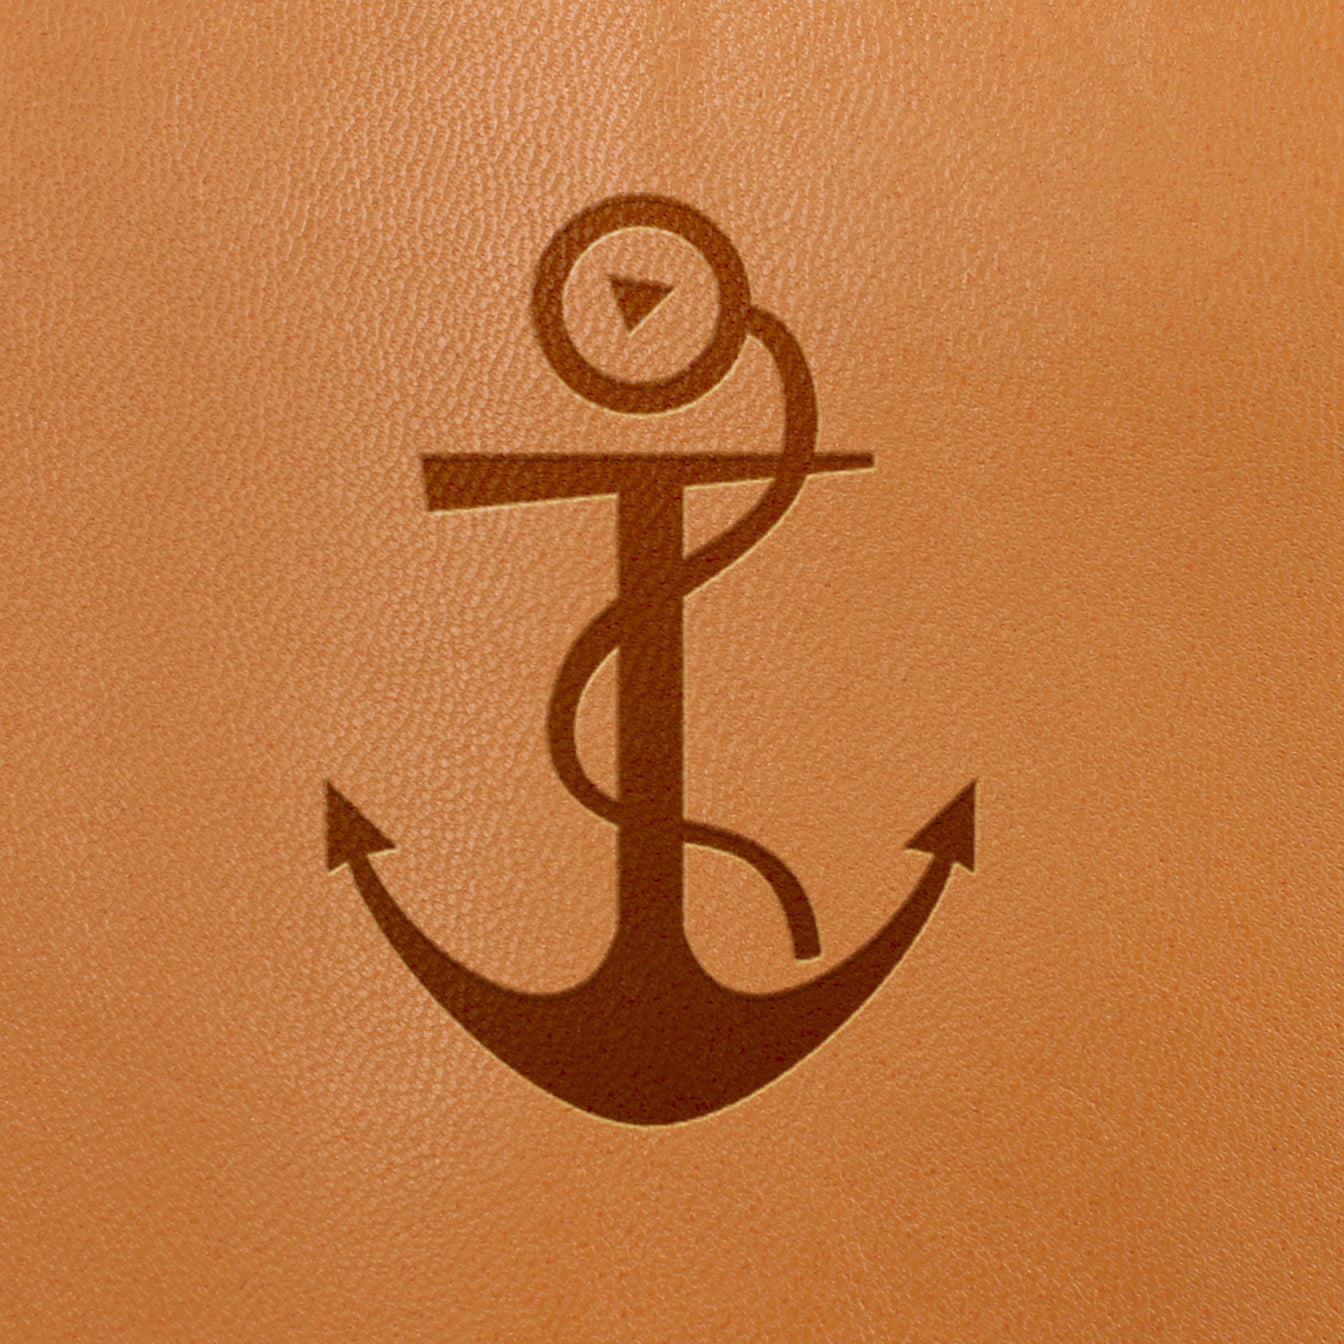 Anchor Symbol - Fire Branded Images